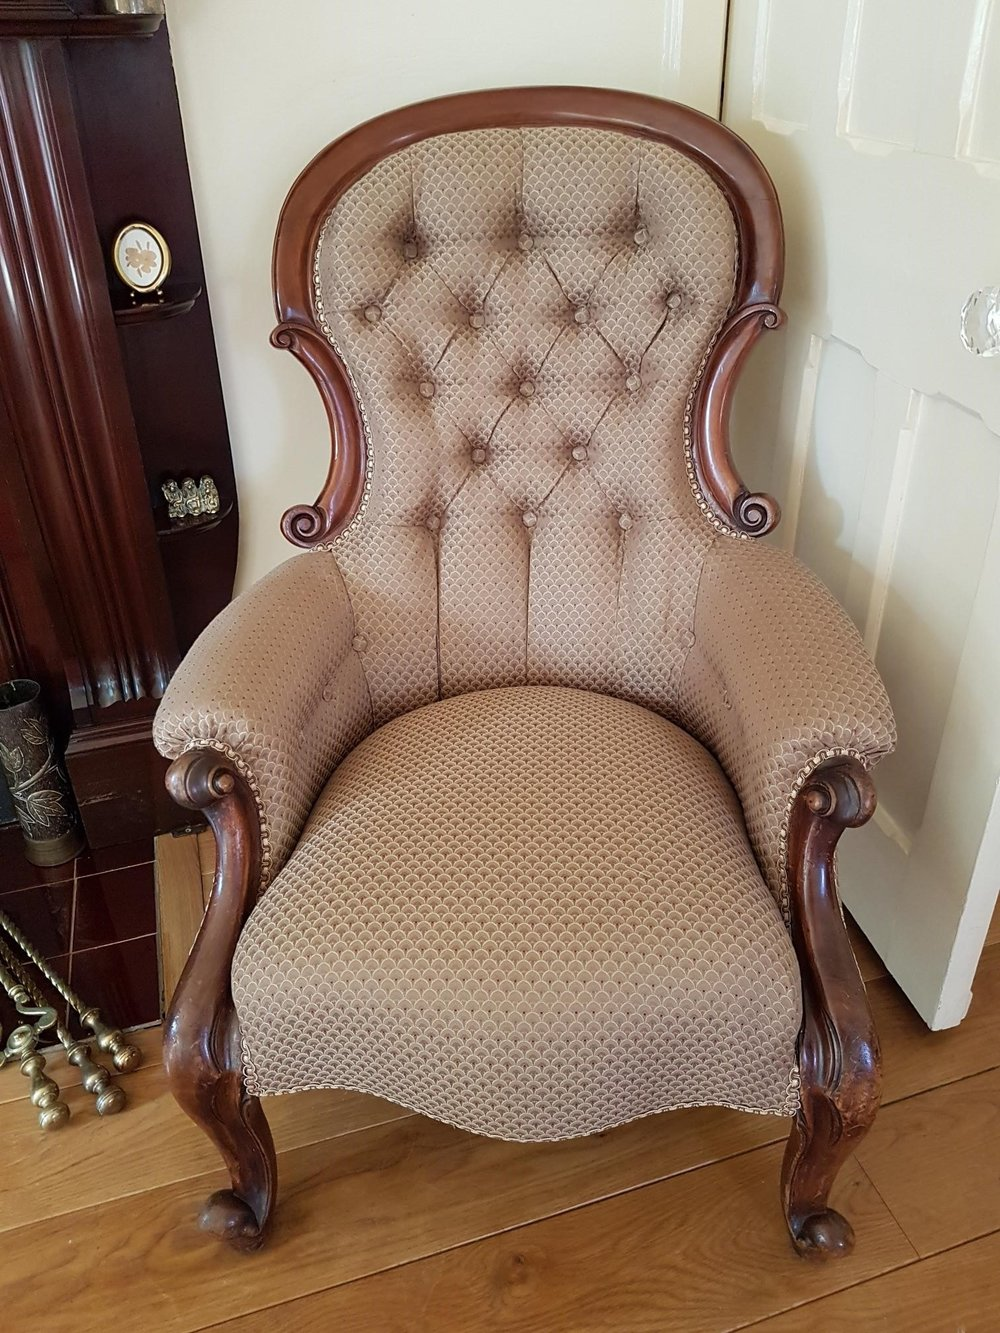 Antique Chair - After